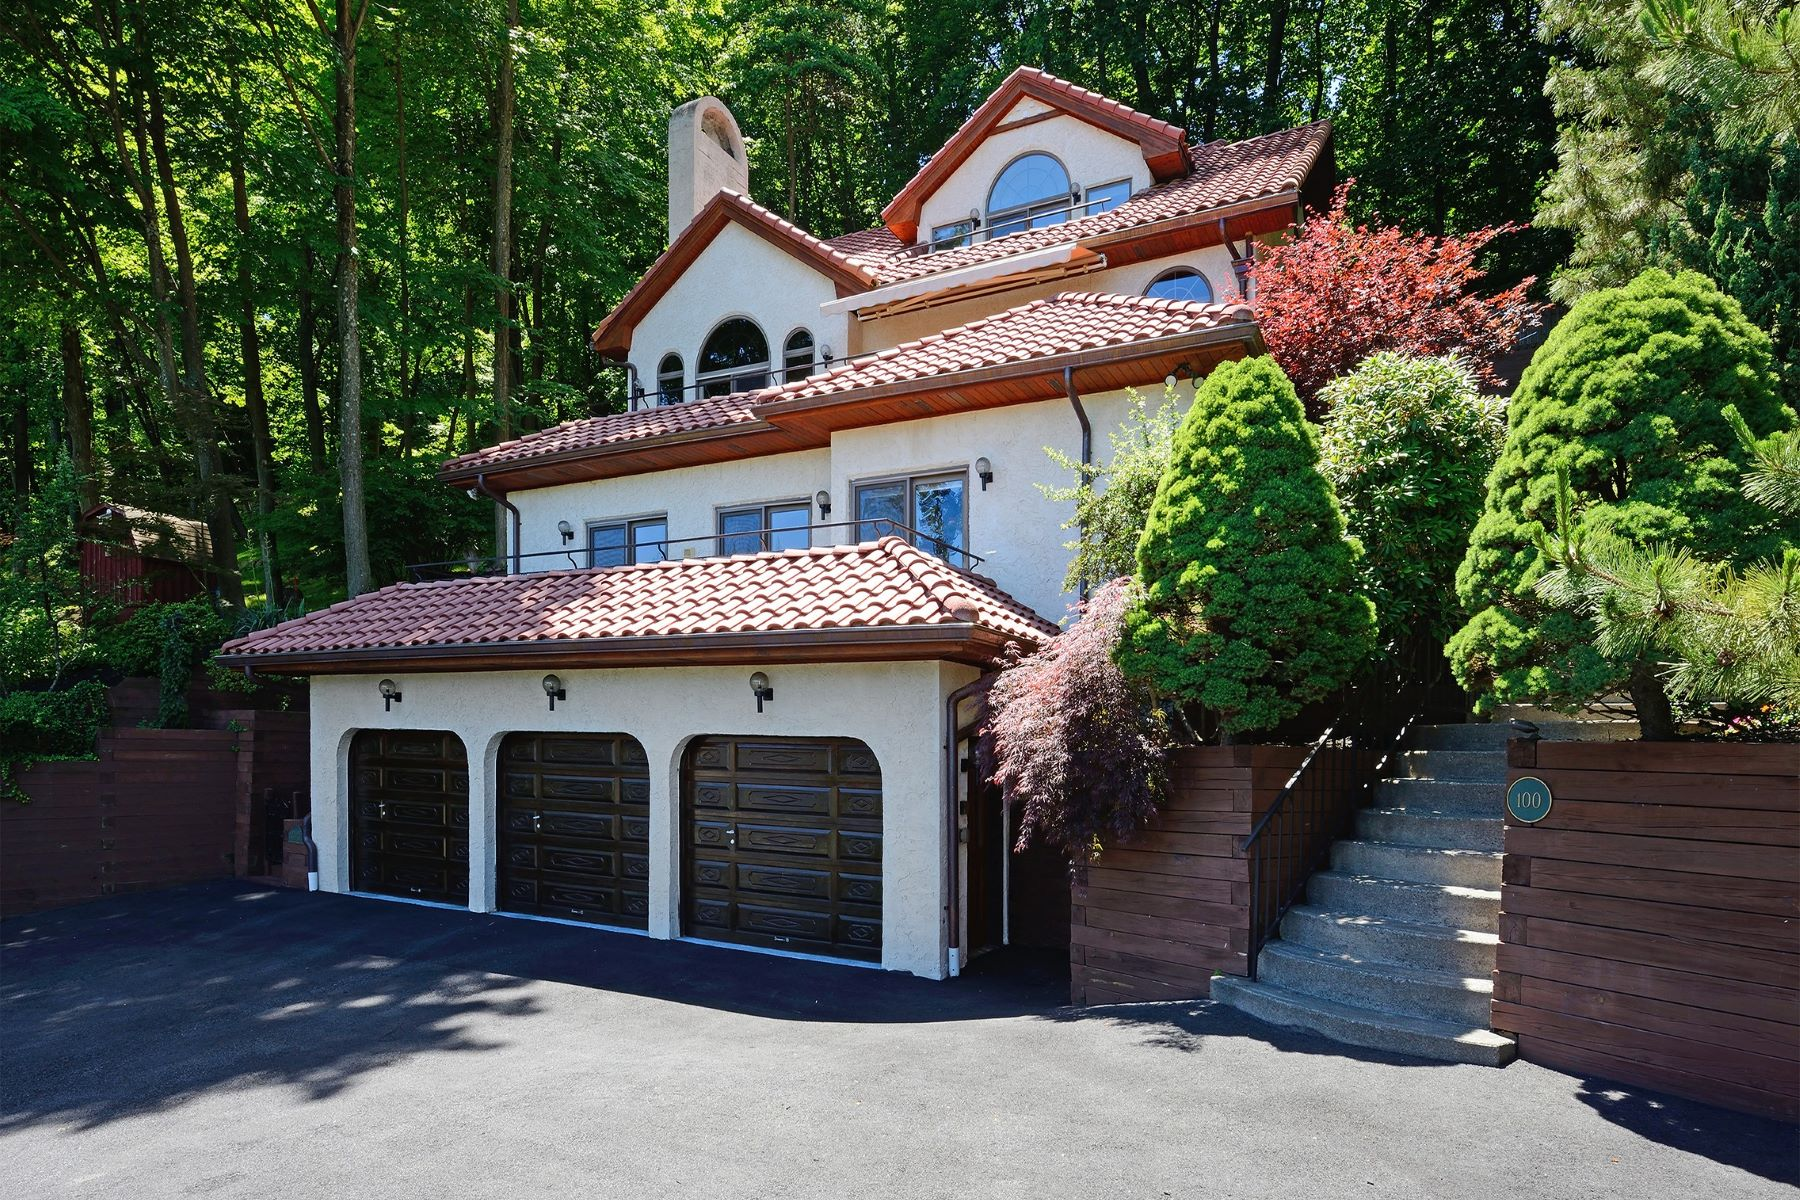 Single Family Home for Sale at Striking Mediterranean 100 Orchard Terrace Piermont, New York 10968 United States